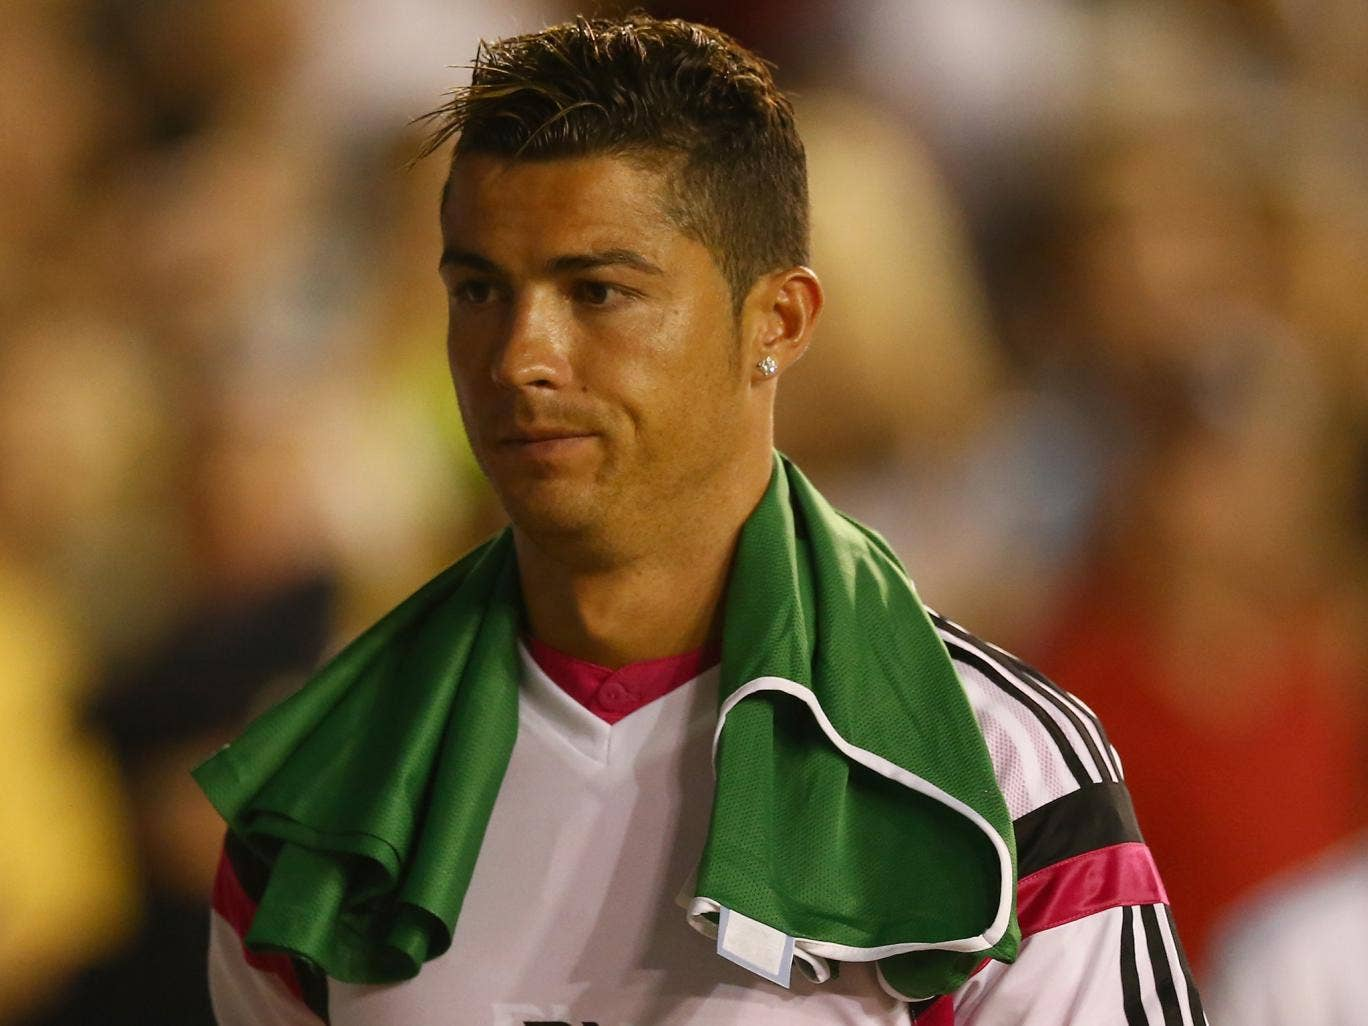 Ronaldo pictured during Real Madrid's pre-season tour